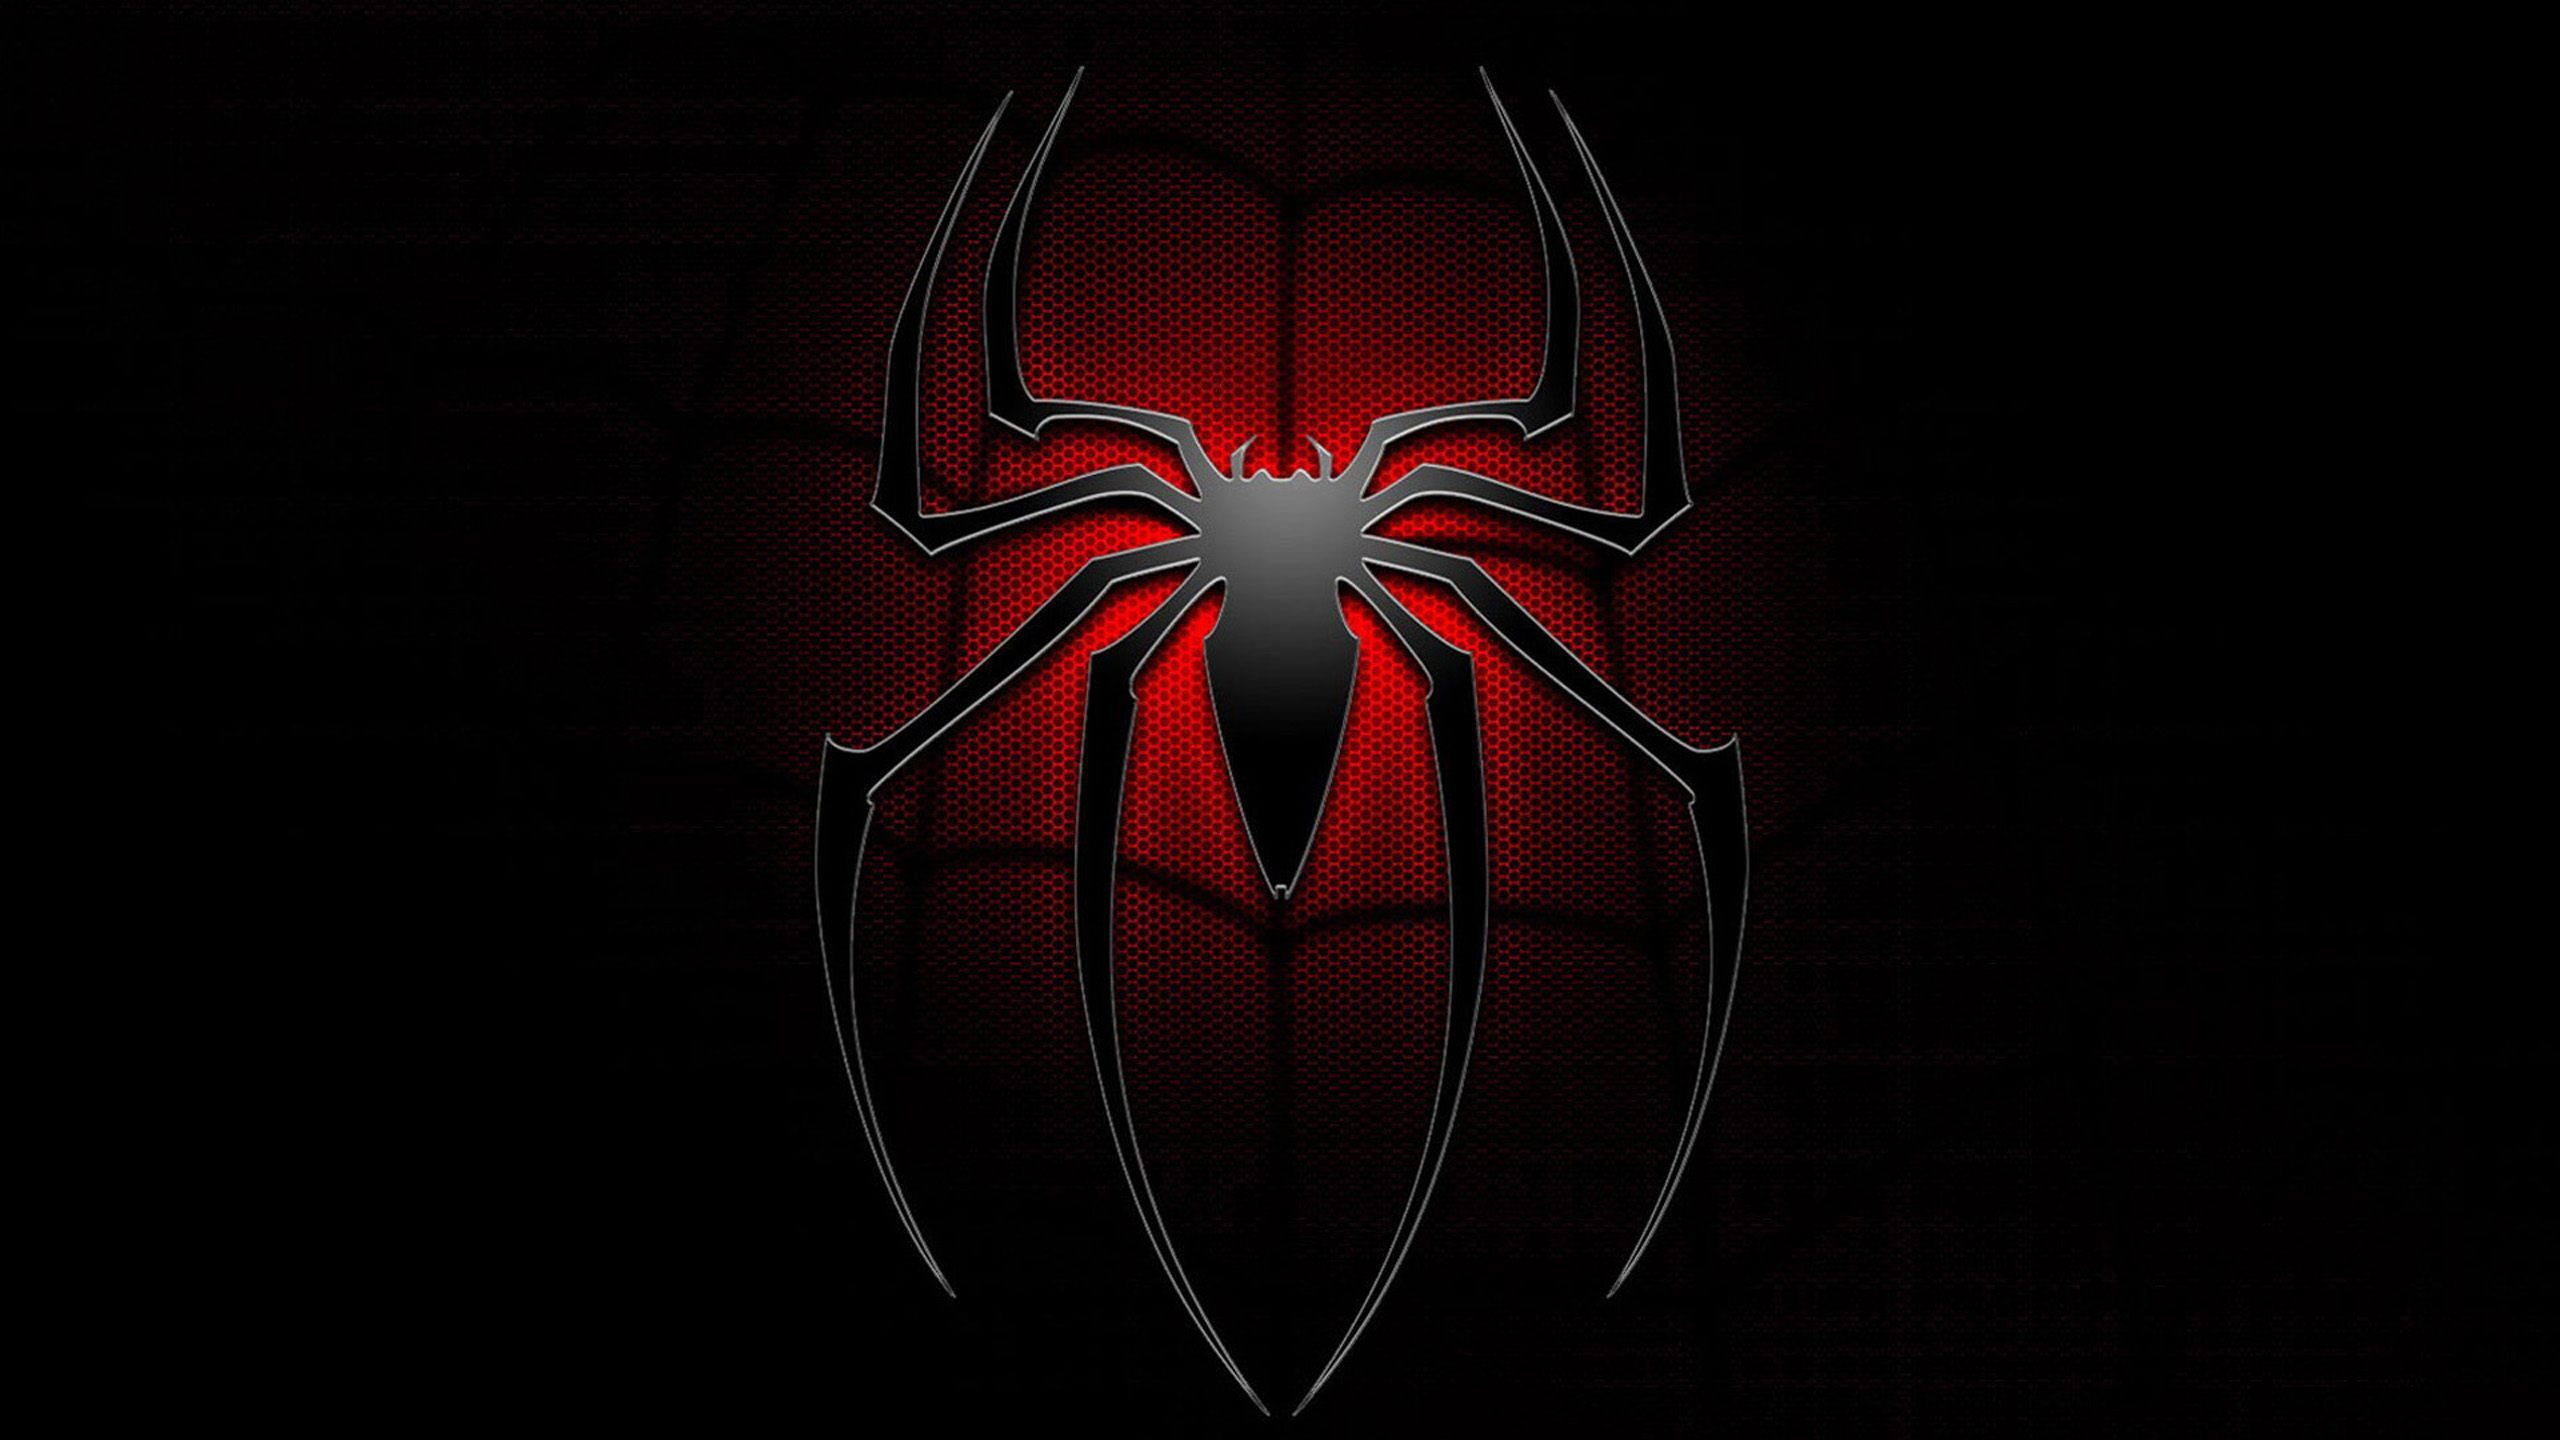 Spiderman Logo Background Wallpaper Hd For Desktop Fondos De Pantalla Pc Ideas De Fondos De Pantalla Fondo De Mickey Mouse